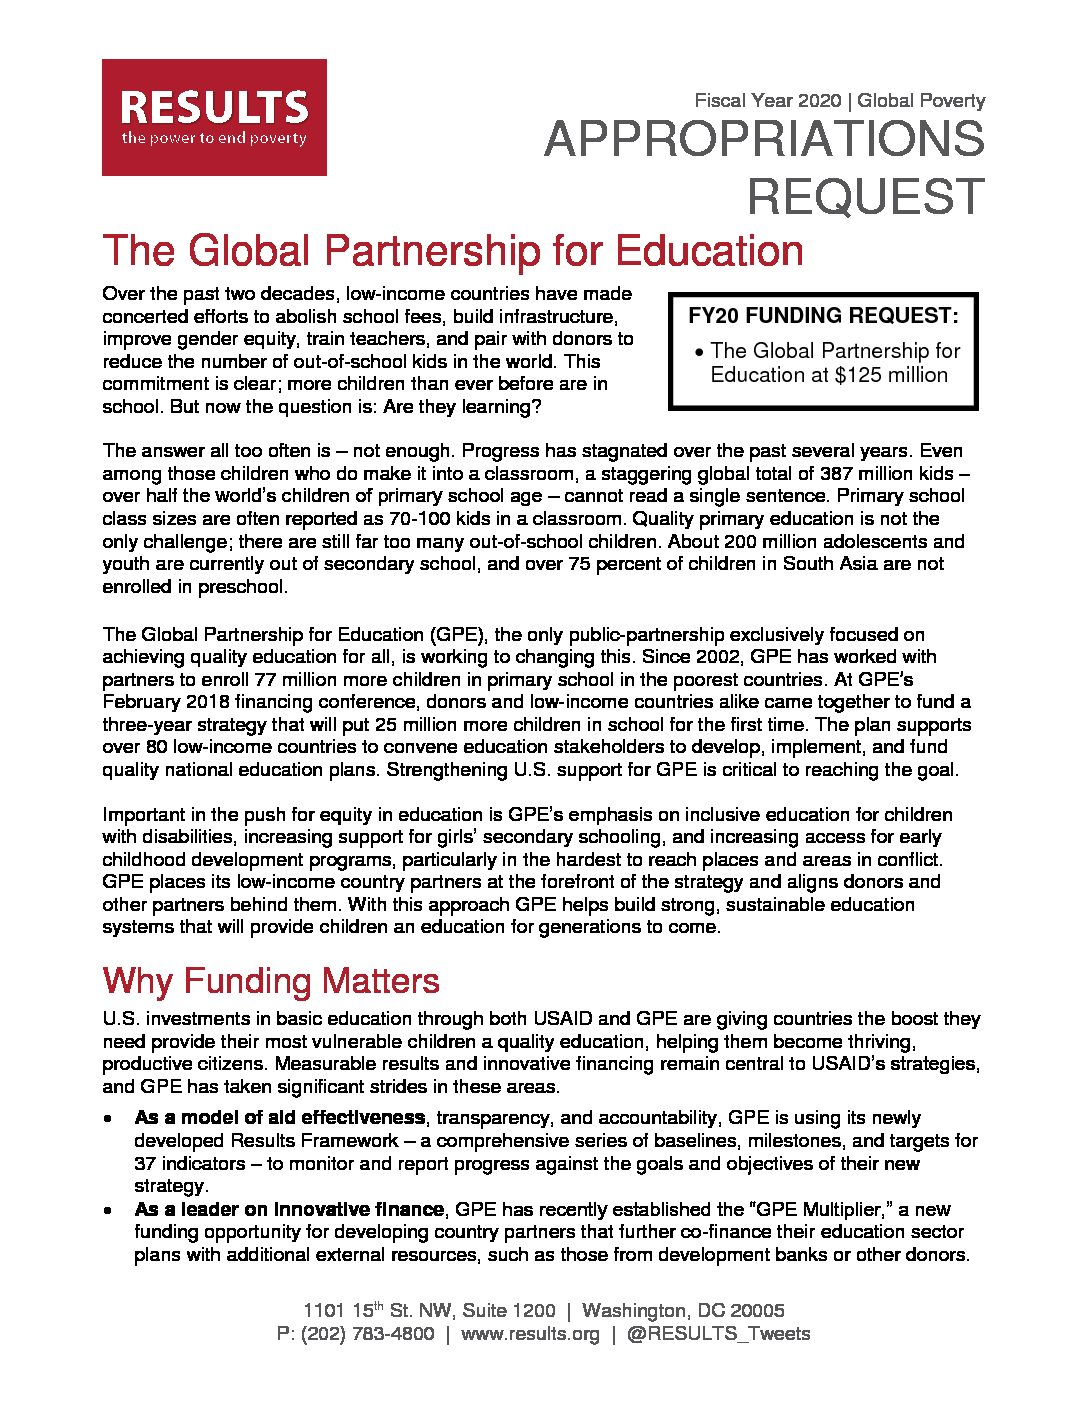 FY20 Global Partnership for Education Appropriations Request